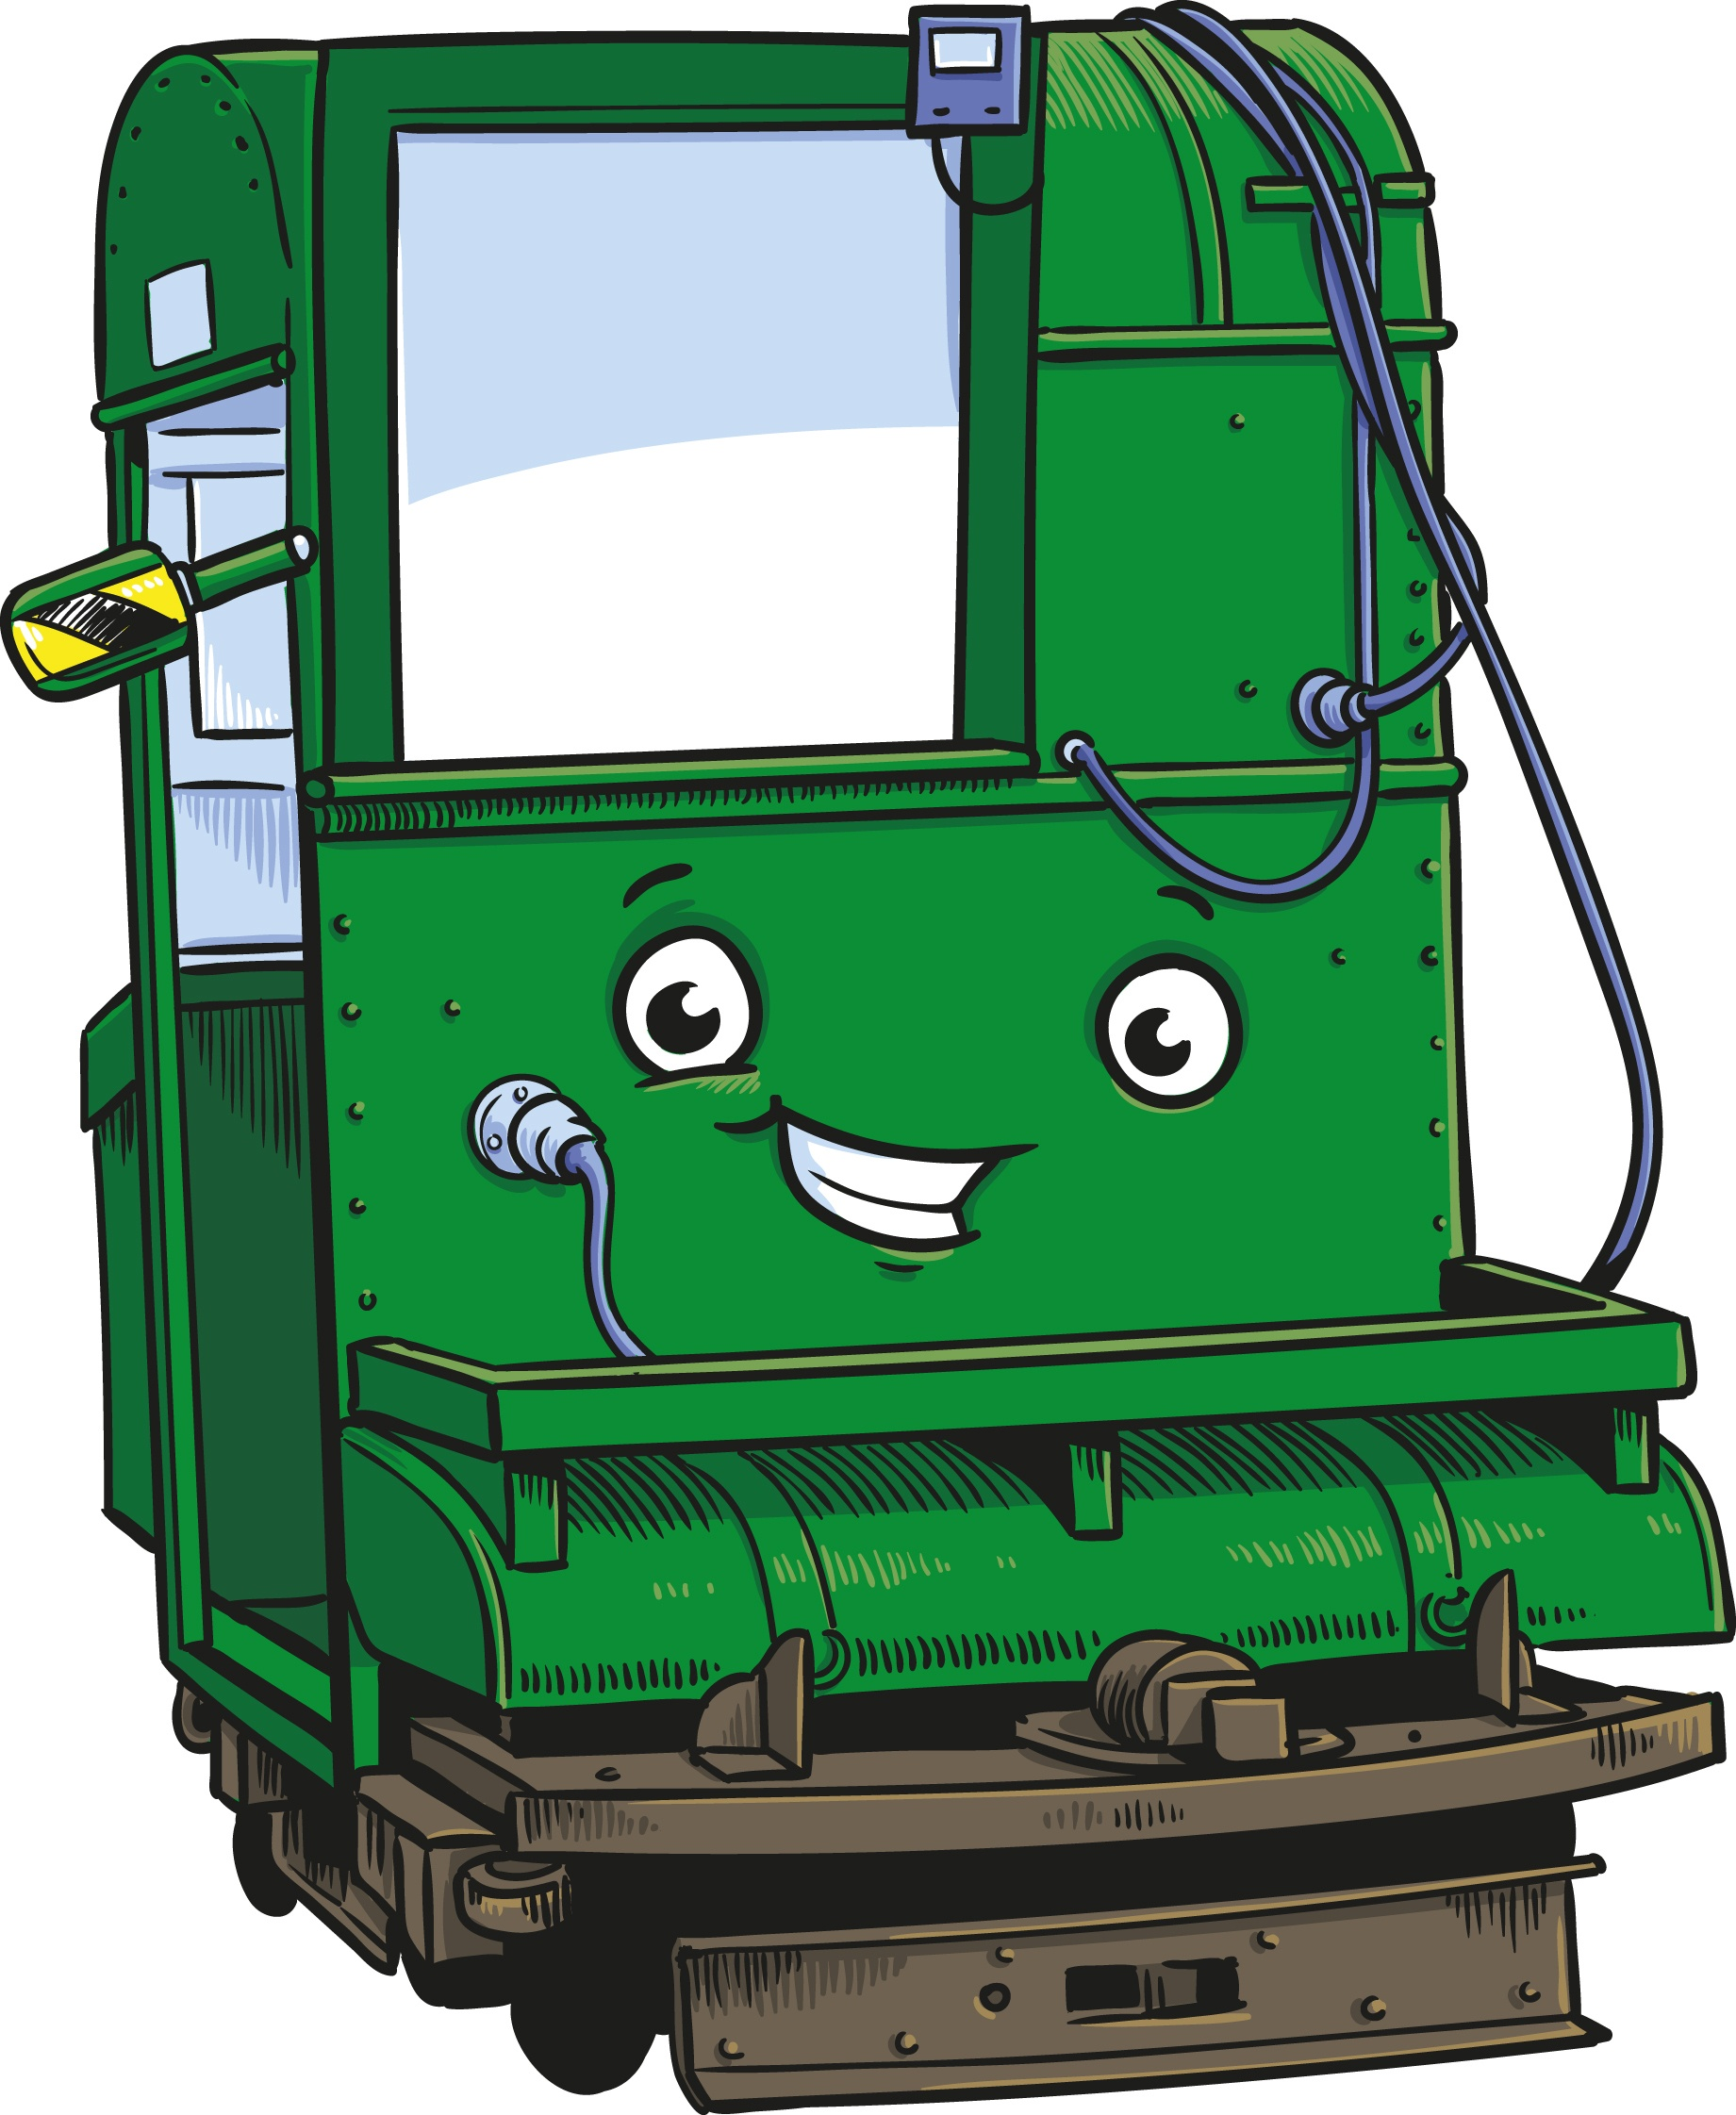 Ceratopia Hythe Pier Cartoon Train.jpg